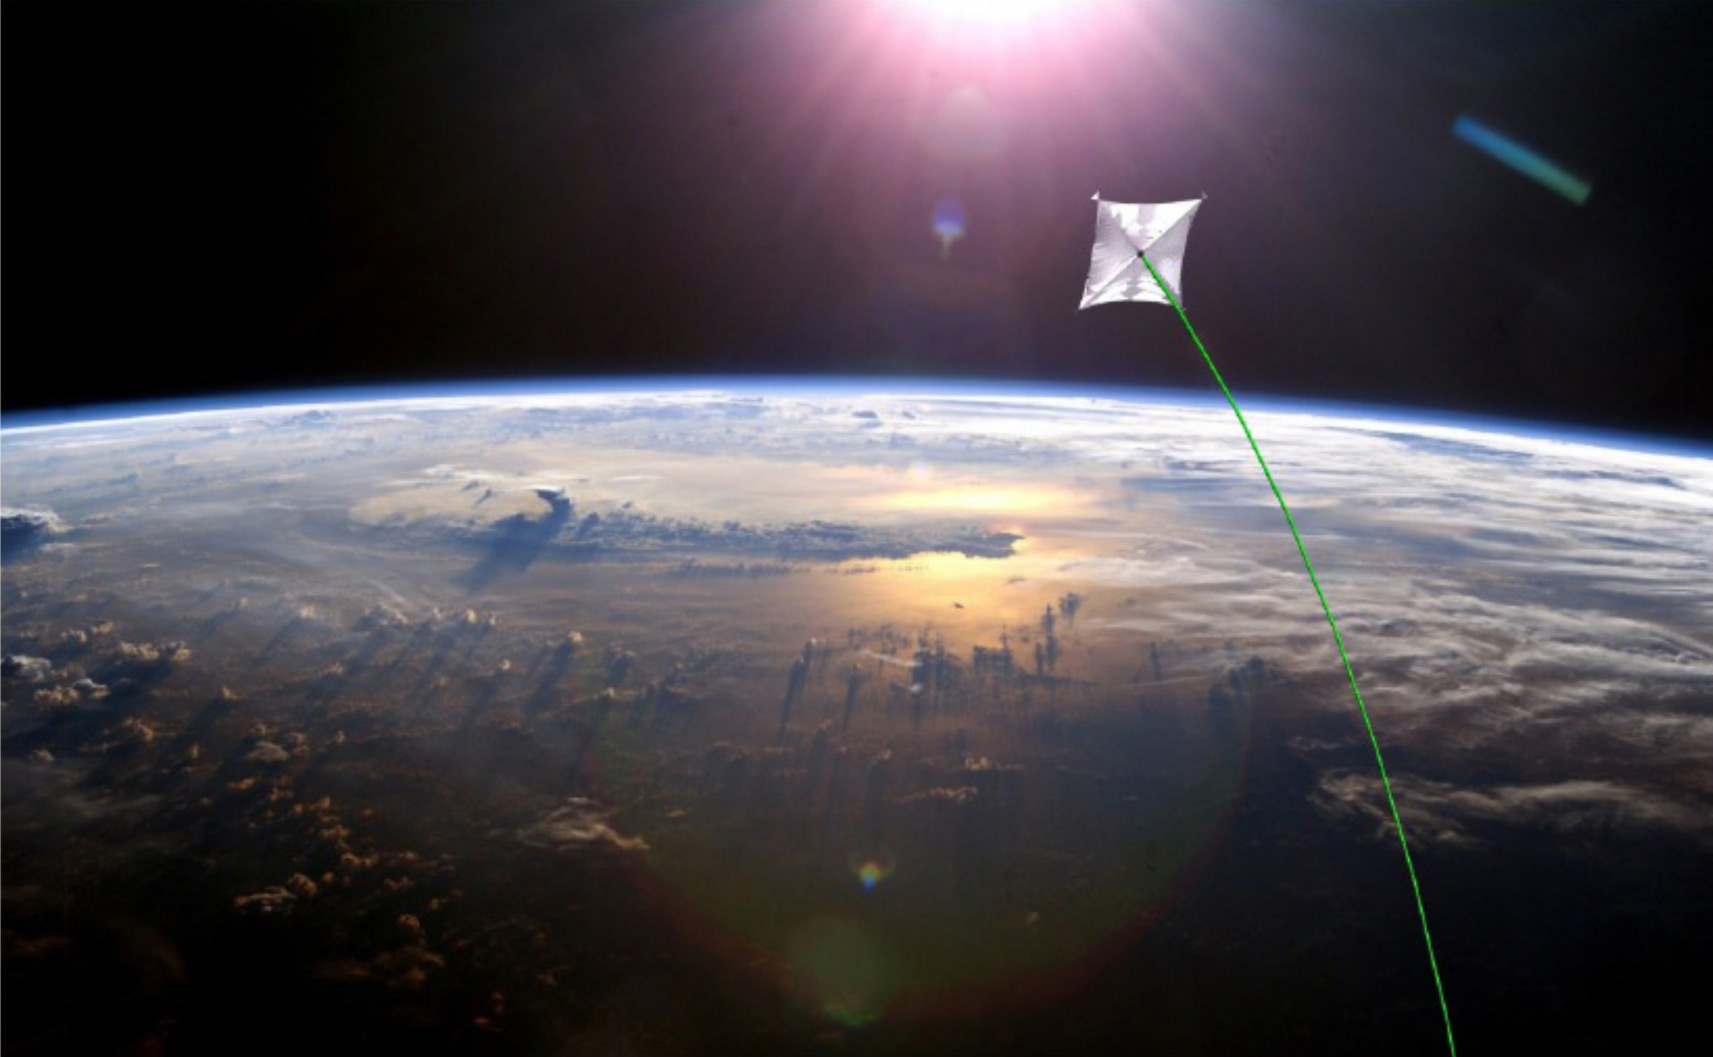 LightSail-1: A New Solar Sail Mission